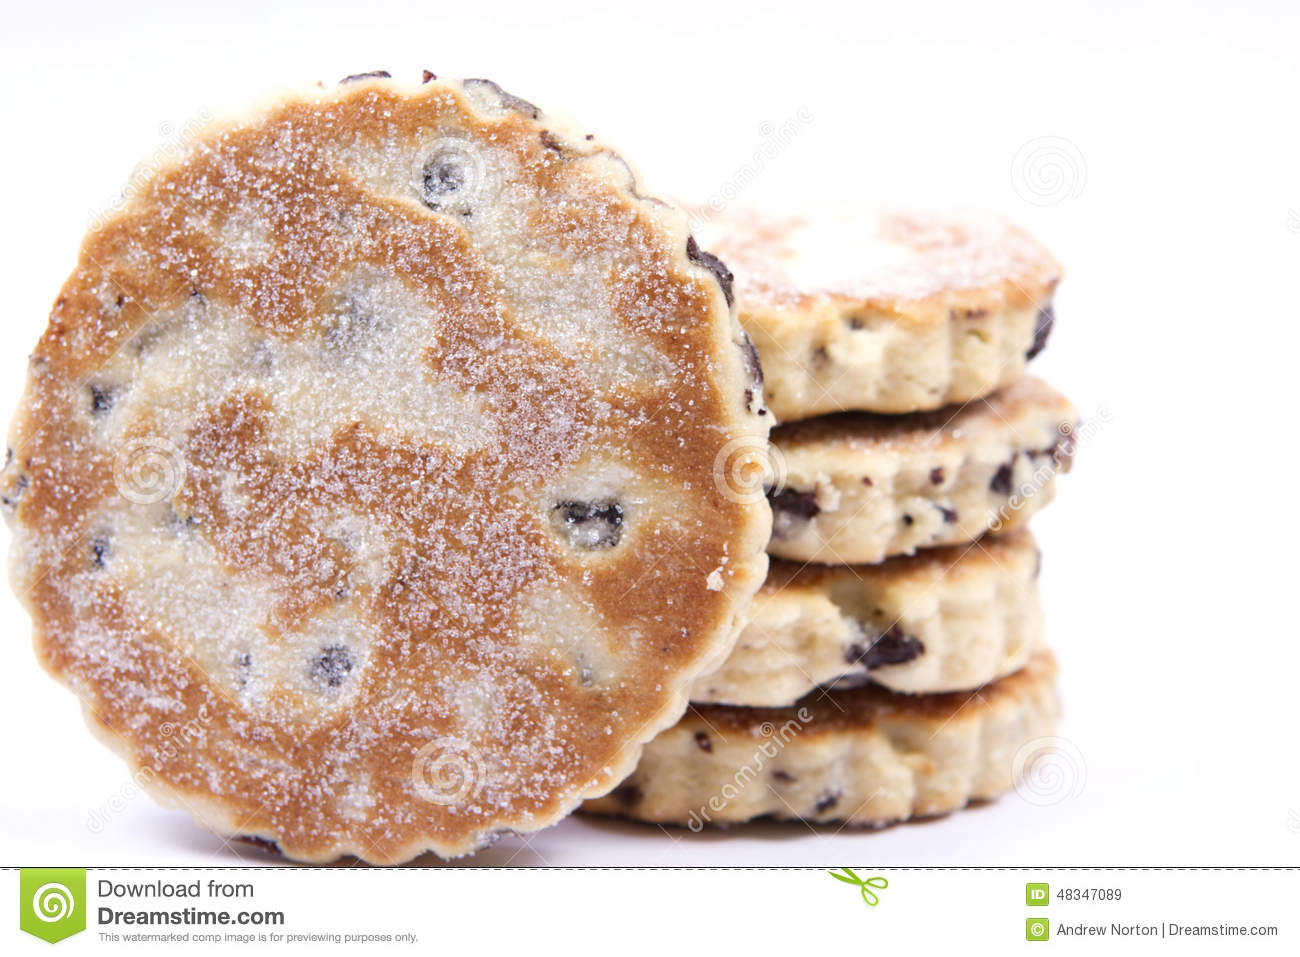 Clipart Welsh Cake : Welsh cakes stock image. Image of nutrition, dried ...